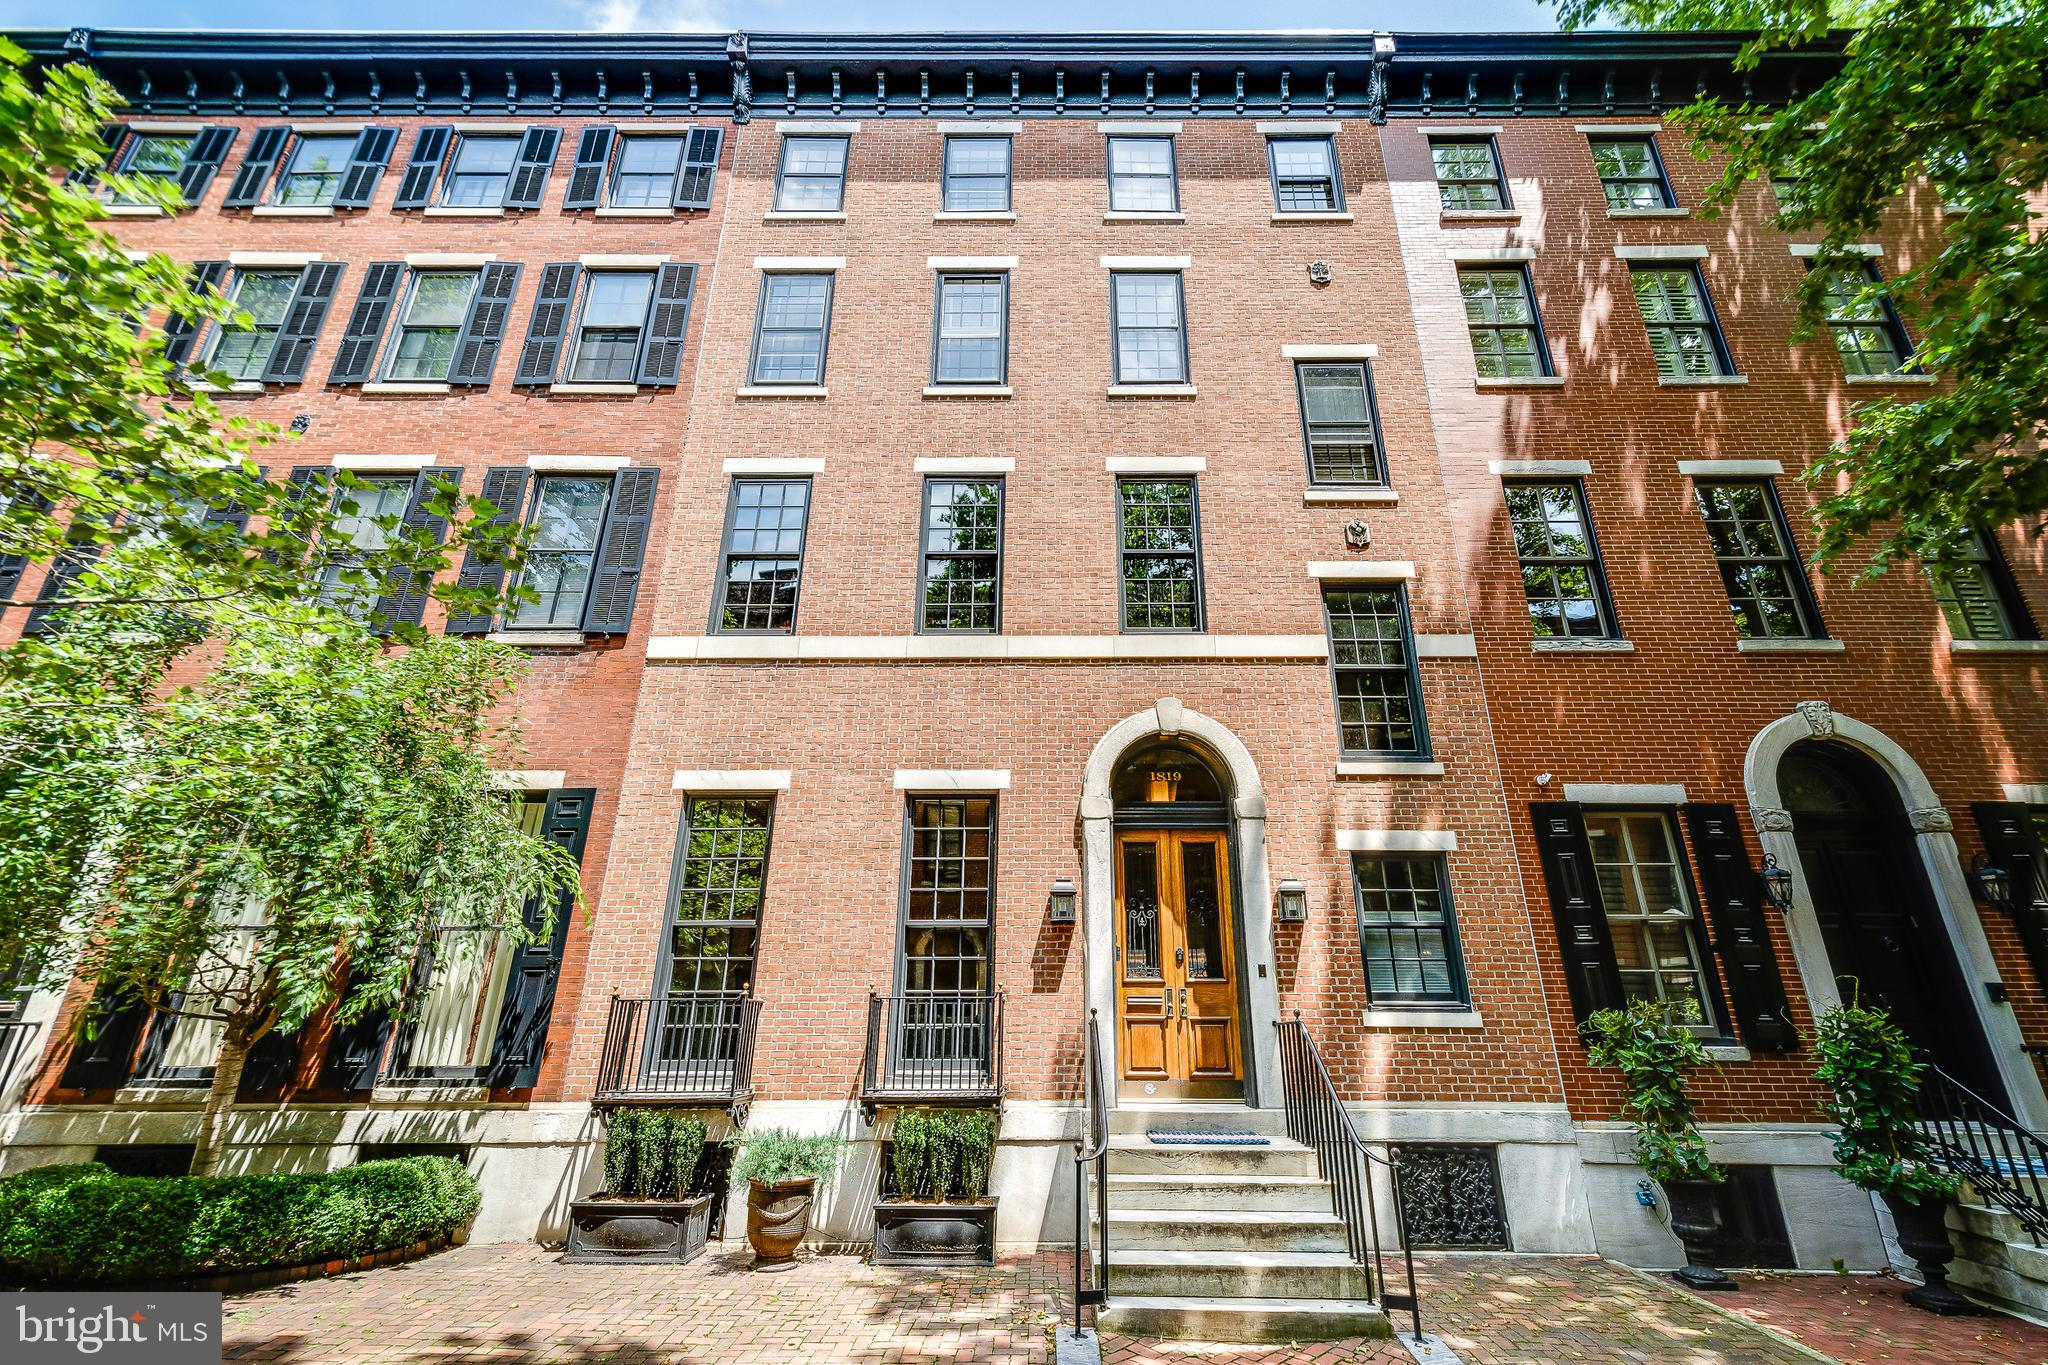 Introducing 1819 Delancey Place - Built in 1752, this is truly an Exceptional & Rare Opportunity to live in a home of this caliber, located on the most beautiful block in the Rittenhouse Square Neighborhood. The Homes façade is 29' wide with a grand entrance that will open its door to a Foyer, where you can easily greet a Host of guests. Stately wood wainscoting and hand carved stairwell sets the tone for this 6 bedroom, 6300sf meticulously restored Historic Home. Southern Exposure light floods the Living Room from the pristine hardwood floors to the 14' ceilings, outlined in Crown Molding. Not one, but 2, Marble Fireplaces, allow for a room large enough for Seating and a Piano. The Dining Room accented with Stain Glass Windows, graciously sits a table for 12. And a 2nd Foyer, with an Elevator that serves all 4 floors, and stairs to Lower Level. The Kitchen is filled with light pouring in from the Vaulted Ceilings. The true Chefs Kitchen with Wolf 6 Burner Range & Oven, Sub-Zero Refrigerator, Farmhouse Sink, and Butlers Sink. The Center Island makes for a perfect setting, to join the chef as dinner is prepared! Double sliding French Doors lead to a Balcony for Grilling & Entertaining. Off the Hall near Kitchen is the Artful Wood Carved Custom Elevator that serves all 4 floors and lower level. LOWER LEVEL consists of 2-CAR GARAGE, Recreation Room with wet bar, wine storage, and Powder Room. Additional Laundry Room and Large Storage Rooms. SECOND LEVEL is comprised of the Primary Suite which includes Family Room w/ Gas Fireplace, Large Custom Walk-in Closet w/ additional Washer/Dryer;  Primary Bedroom and Primary Bath with Custom Double Vanities and Shower Rooms tucked away behind frosted glass doors. THIRD LEVEL continues with 3 Bedrooms and 2 newly renovated Bathrooms. Each Bedroom has its own fireplace. Owner uses a Bedroom for WORK-AT-HOME OFFICE. FOURTH LEVEL features 2 additional Bedrooms and Full Baths, Separate Walk-in Closet with plenty of storage and Cedar C